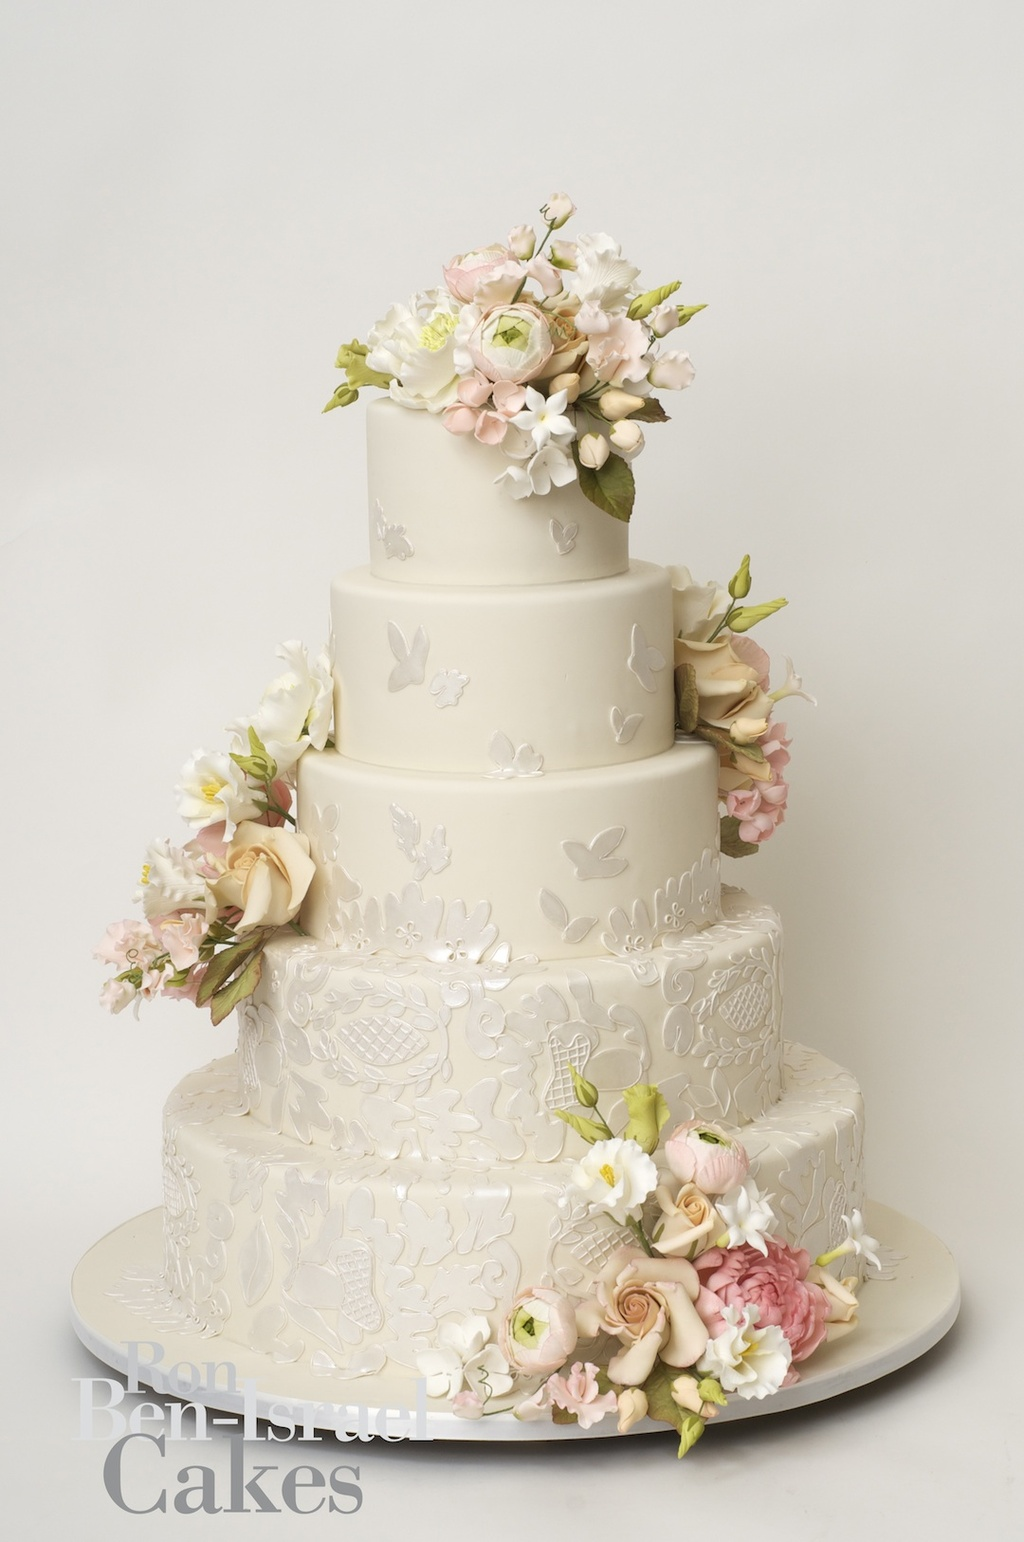 Wedding Cake Inspiration Ron Ben Isreal Wedding Cakes Ivory With Pastel Flowe